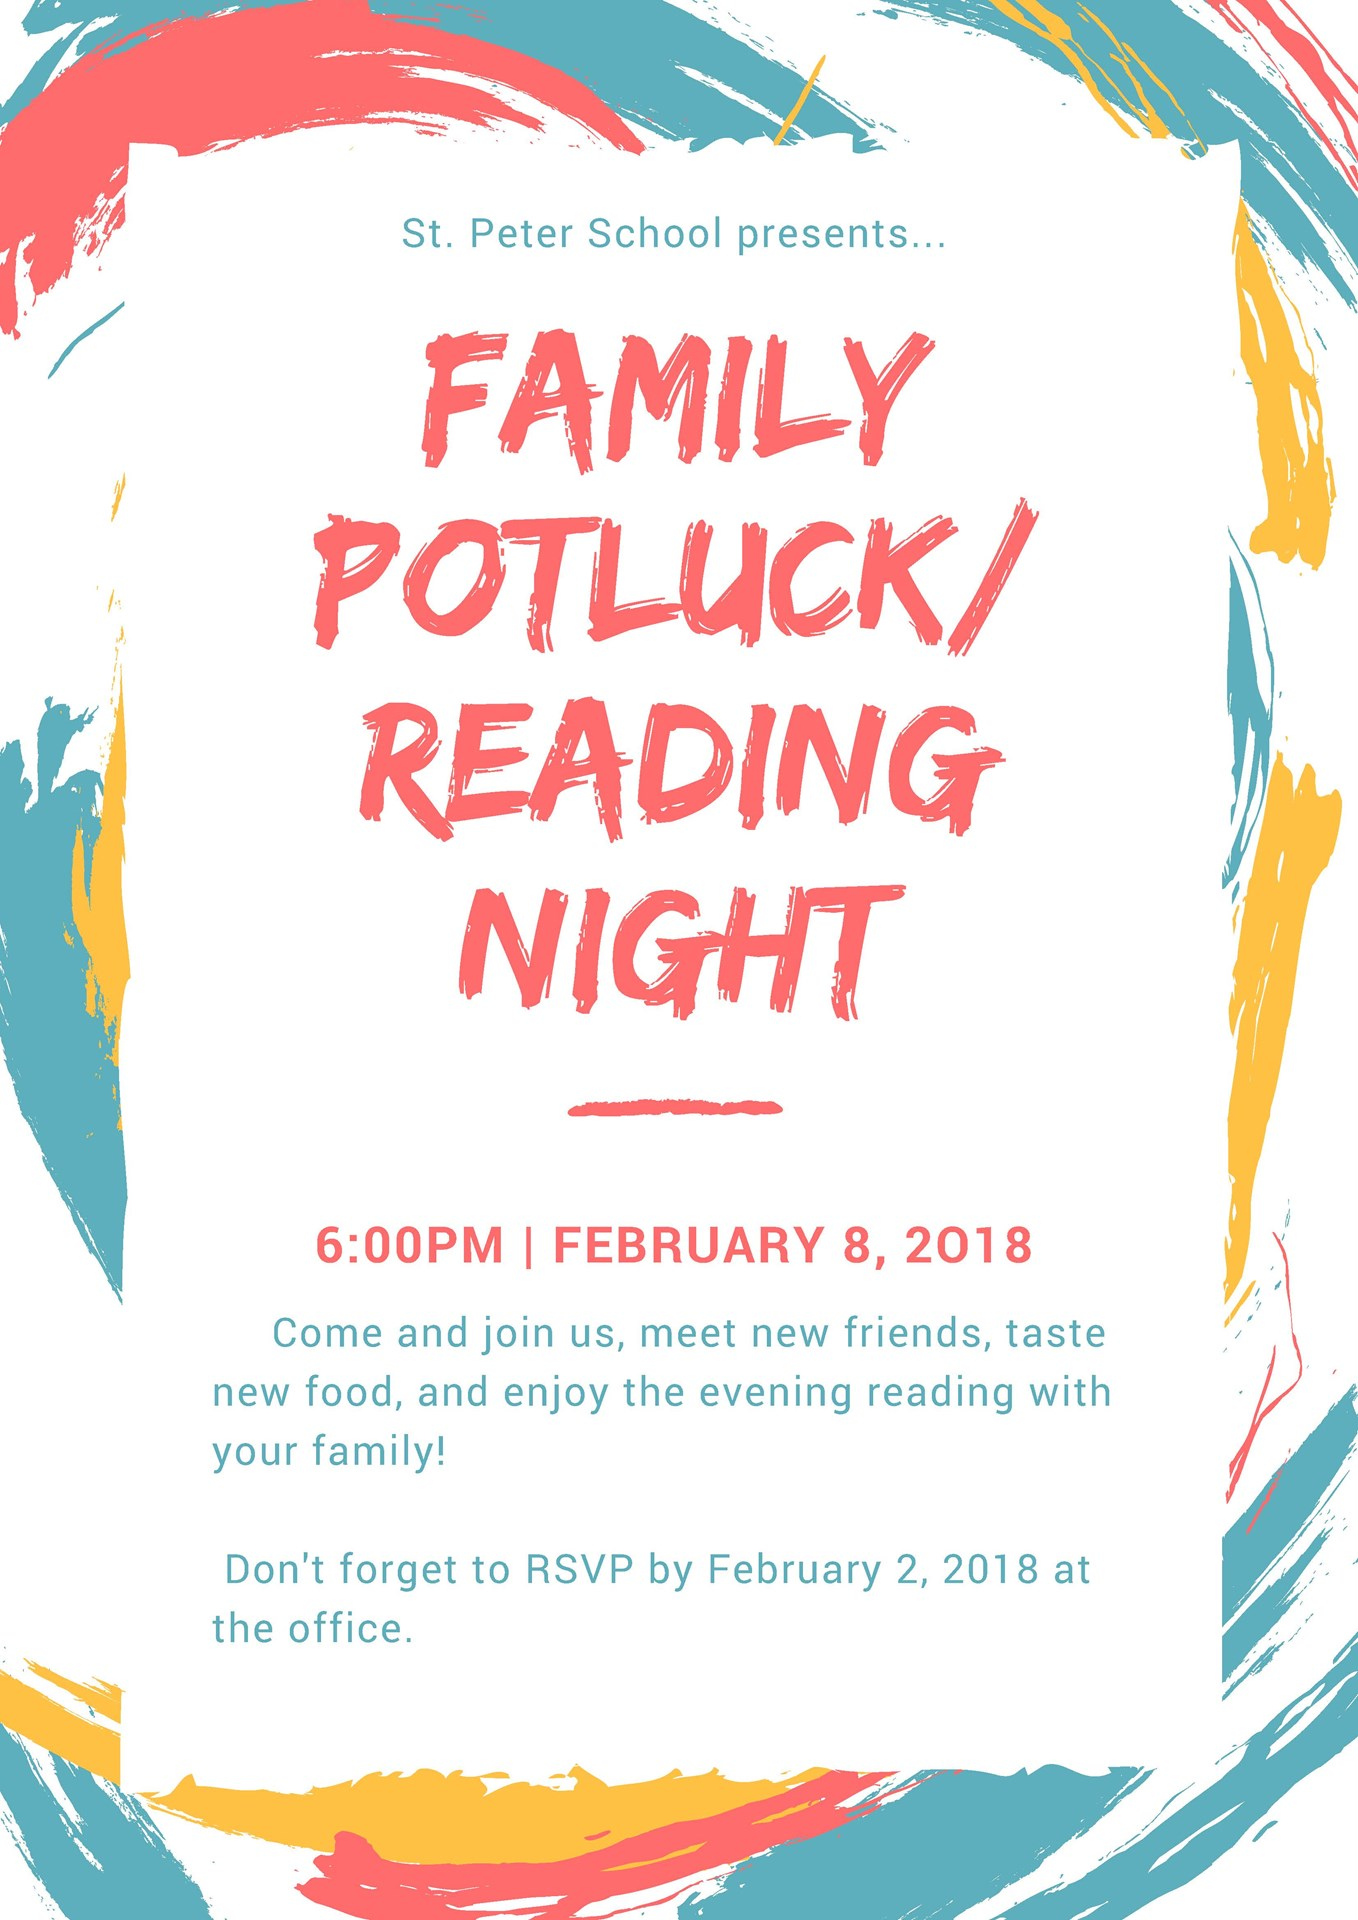 Potluck Reading Night 2018.jpg